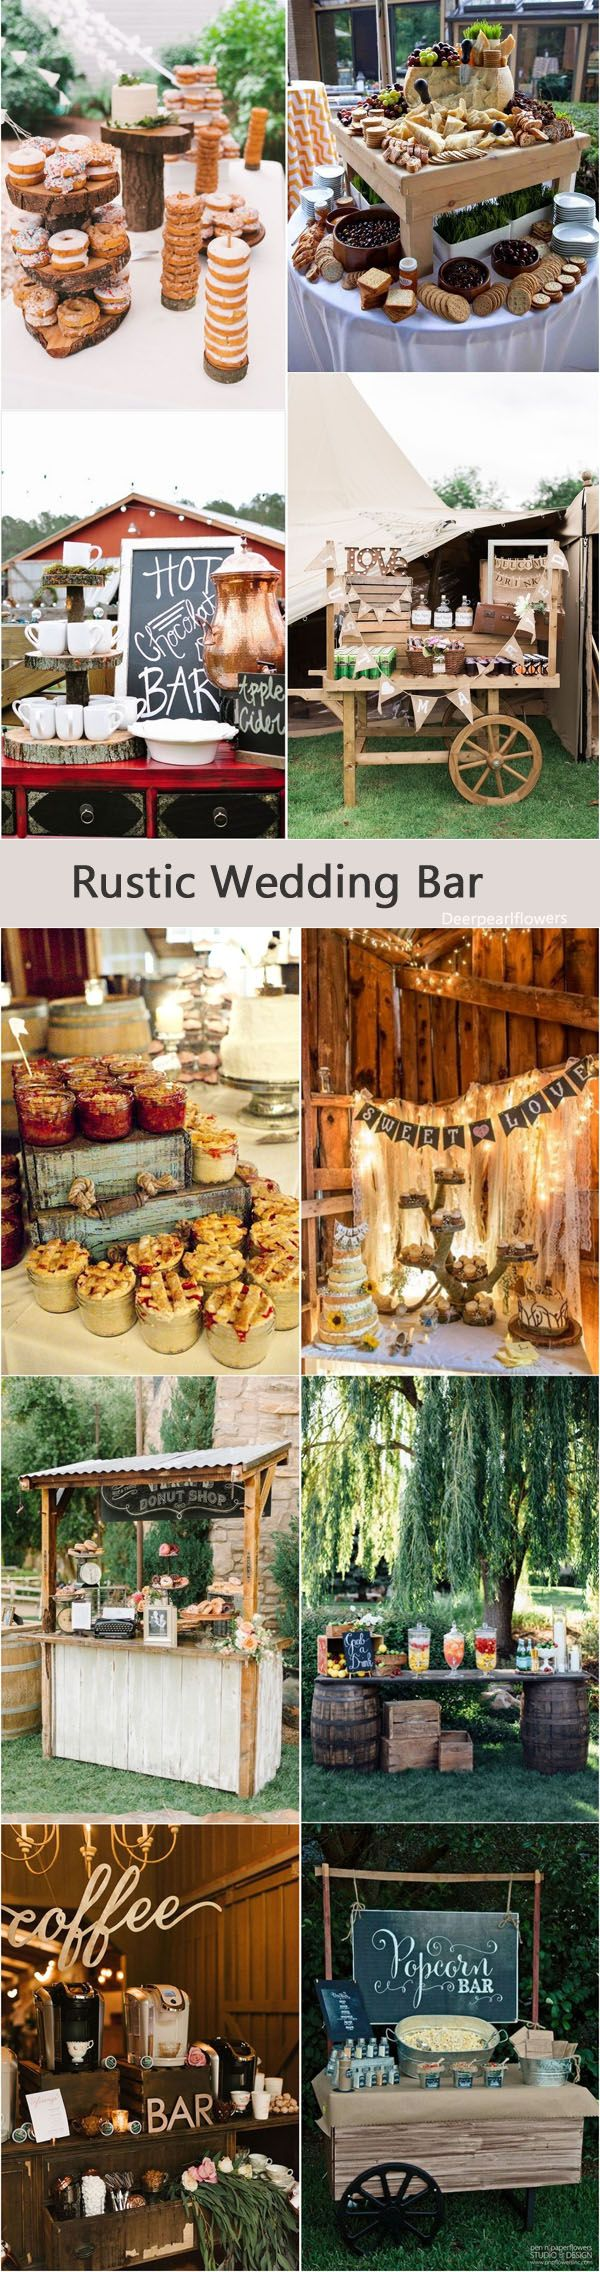 Rustic country wedding bar decor ideas / http://www.deerpearlflowers.com/rustic-wedding-details-and-ideas/2/